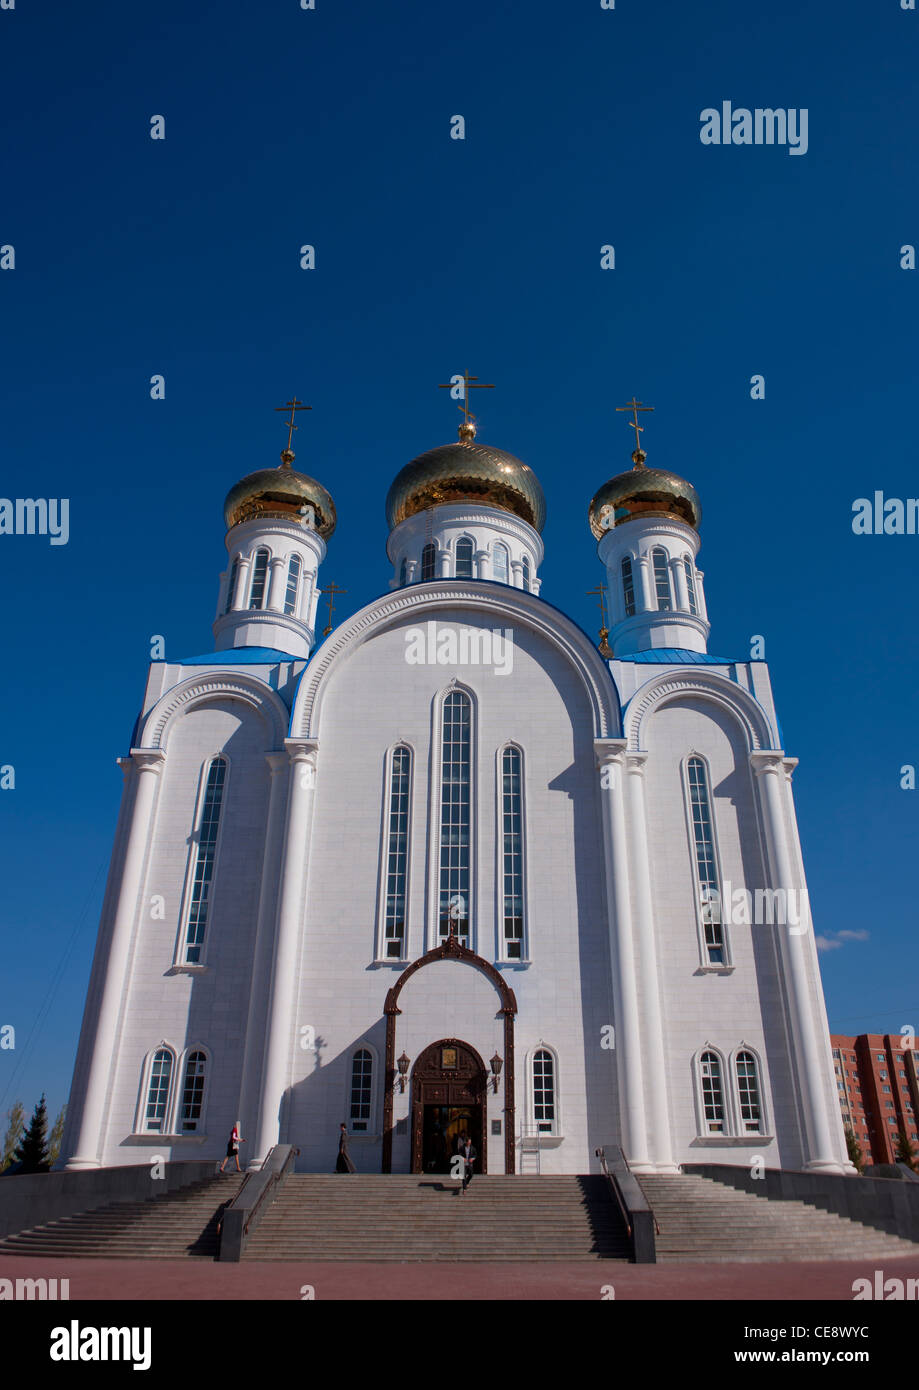 Russian orthodox church, Astana, Kazakhstan - Stock Image